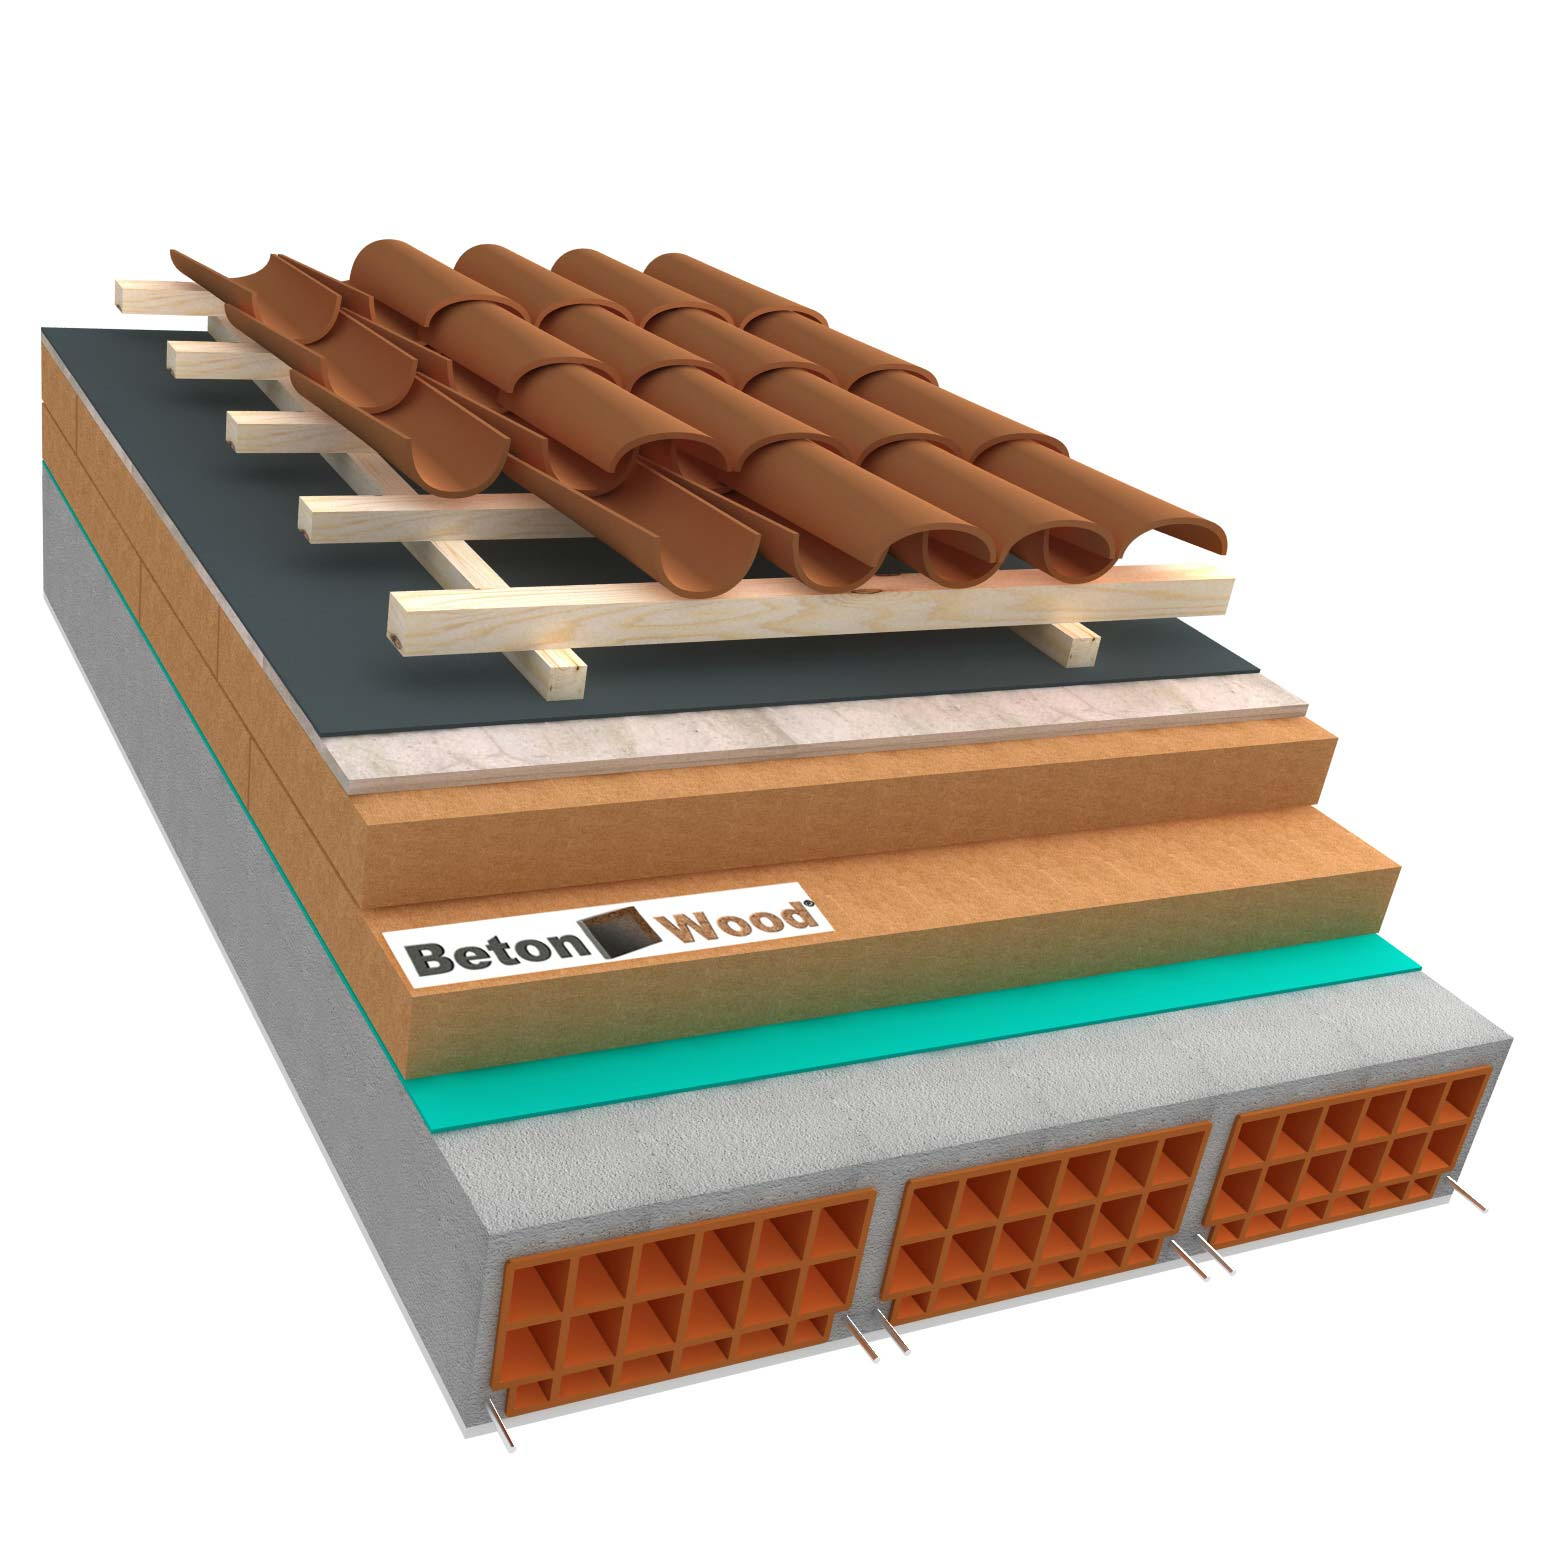 Ventilated roof with wood fiber Therm and cement bonded particle boards on concrete